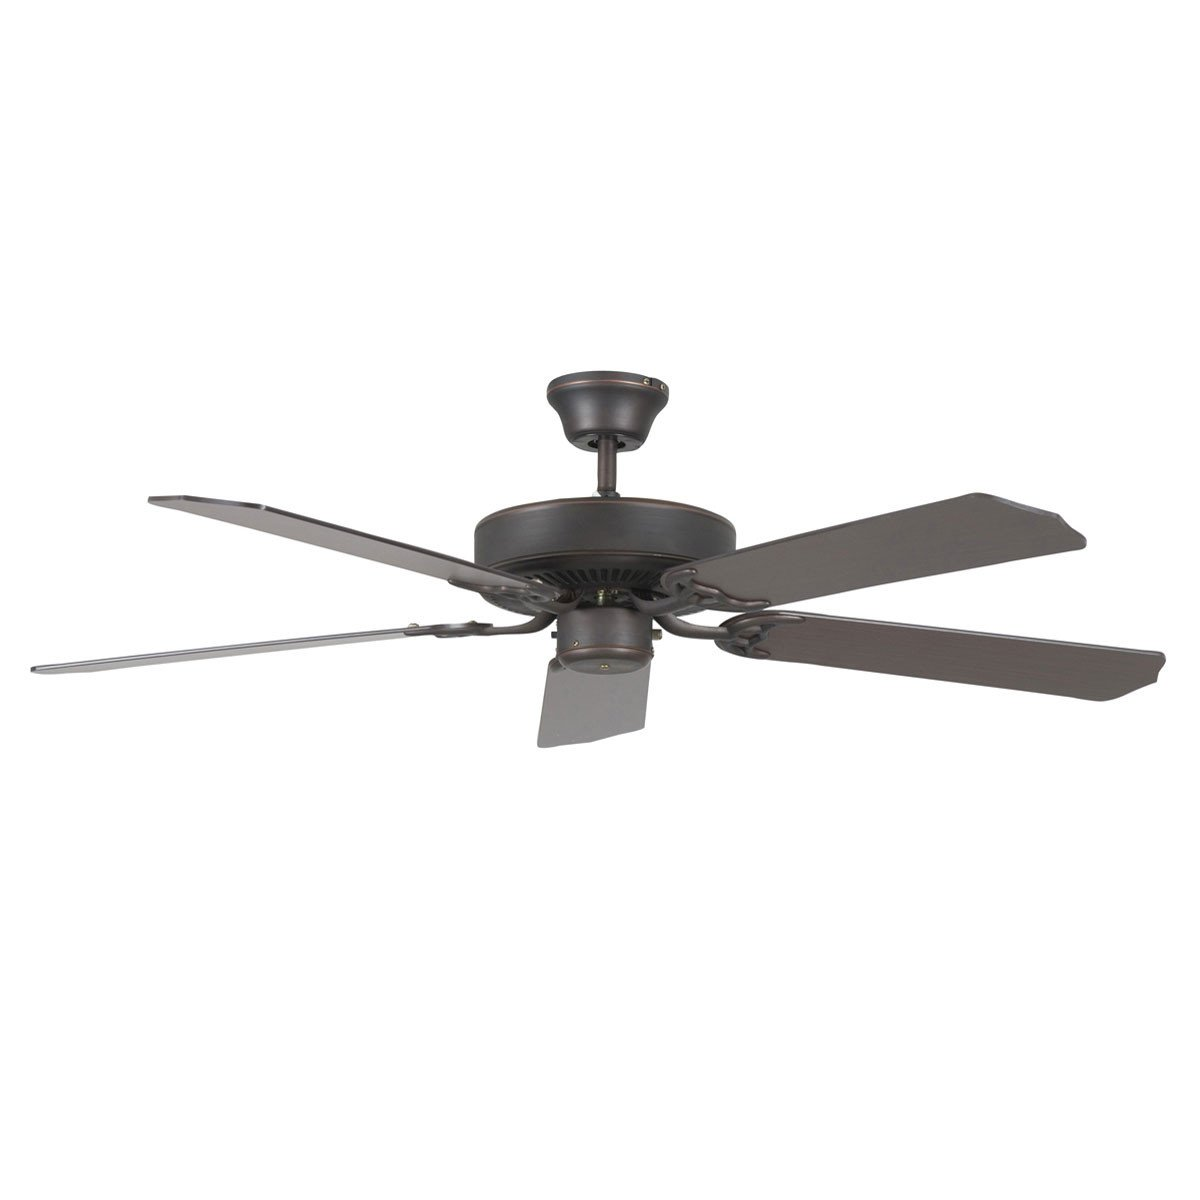 "Concord Fans 52"" Heritage Oil Rubbed Bronze Simple Attractive Ceiling Fan"